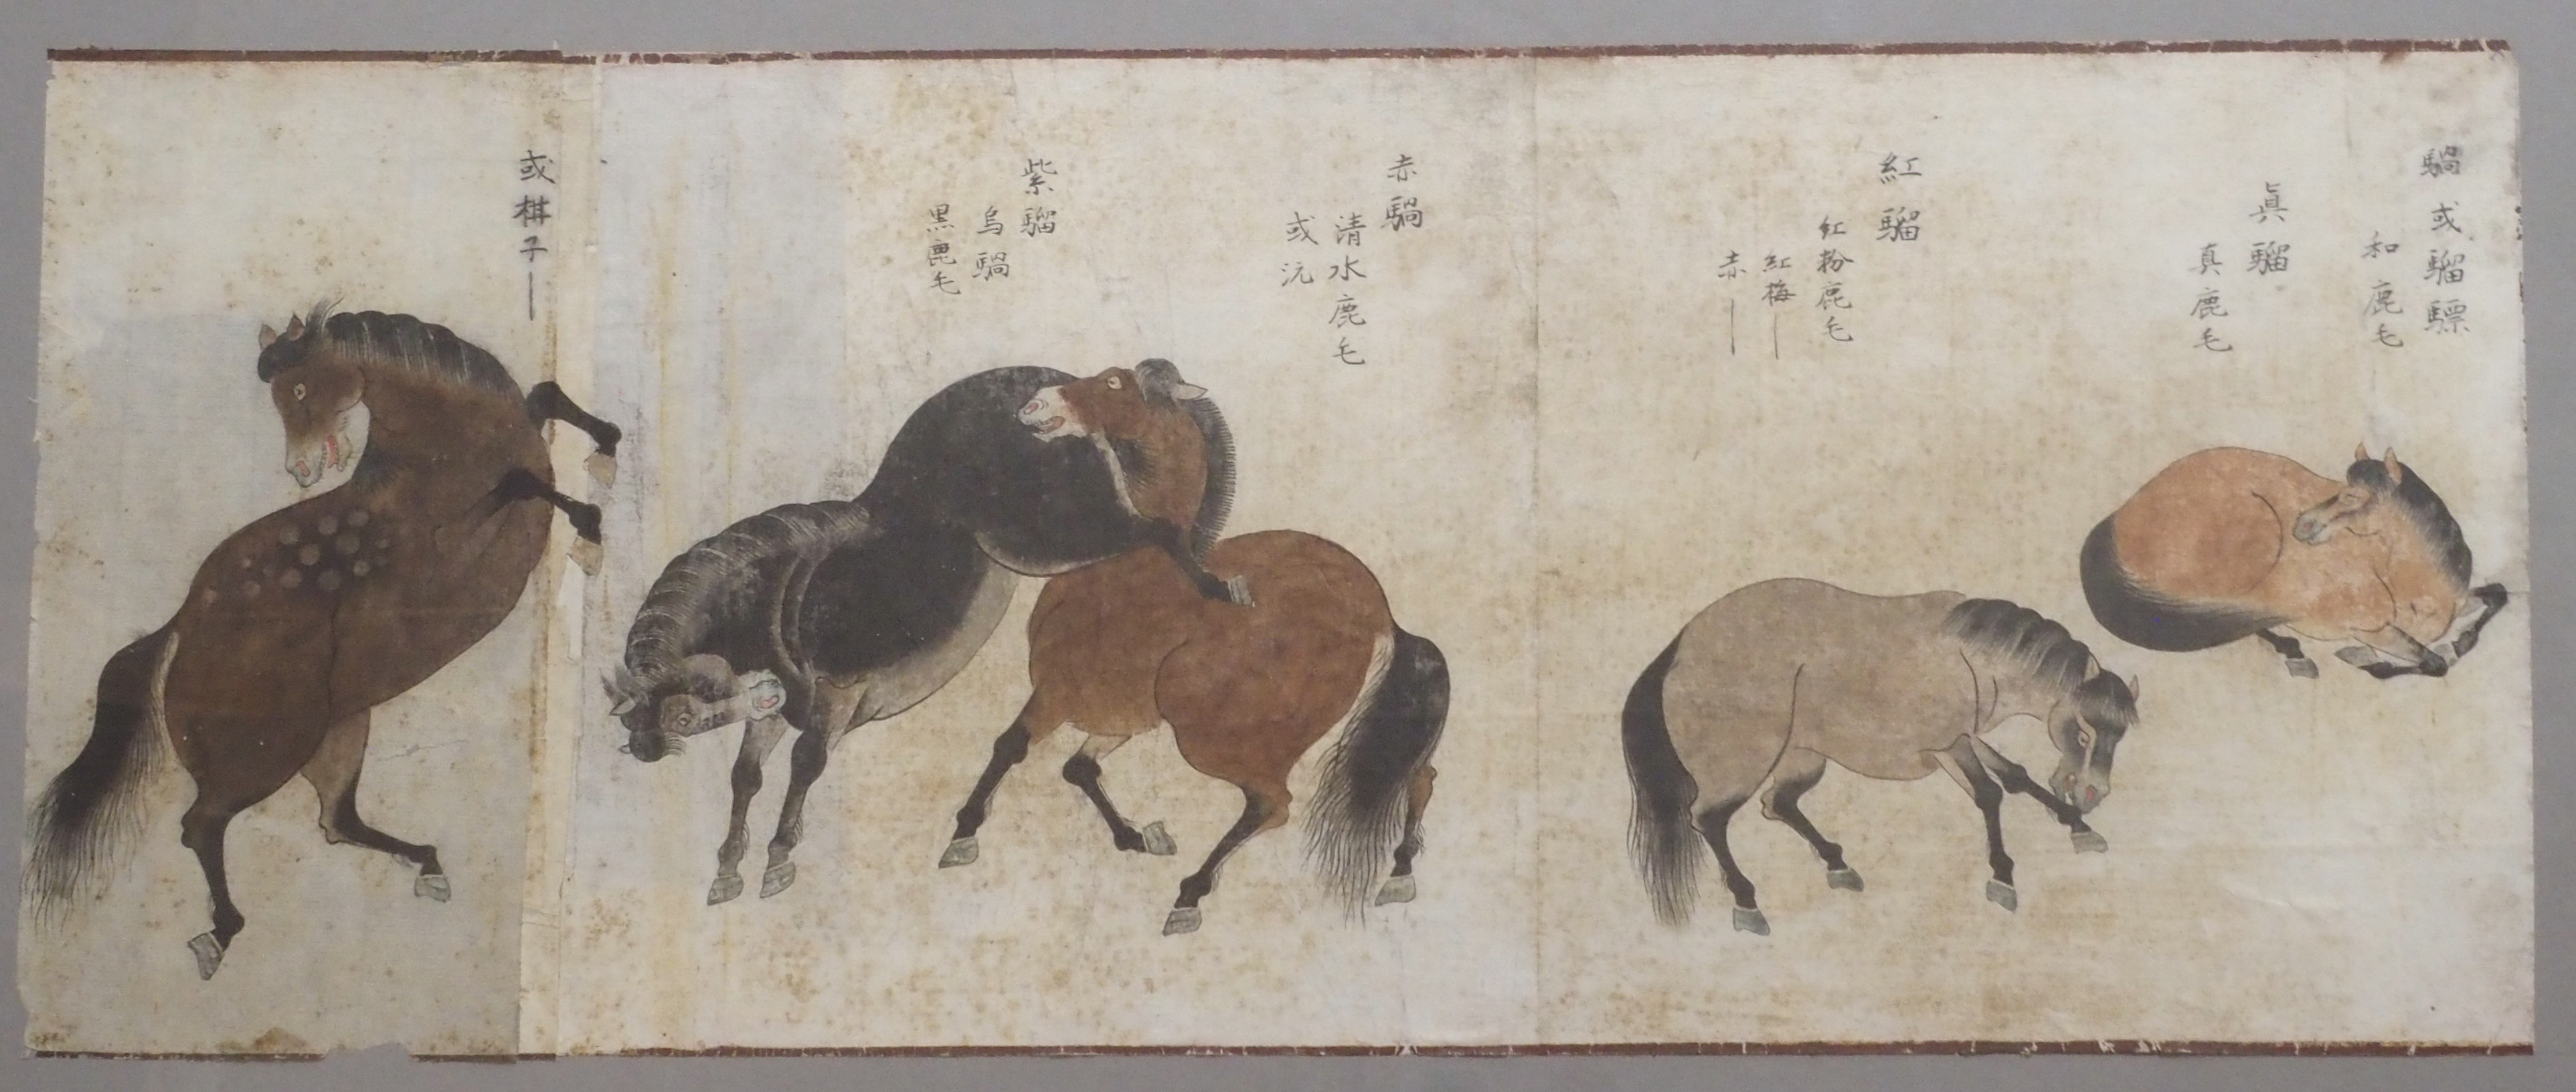 Lot 53 - TWO CHINESE WATERCOLOUR PAINTINGS OF HORSES one with four horses in two sections, 26cm x 56cm and